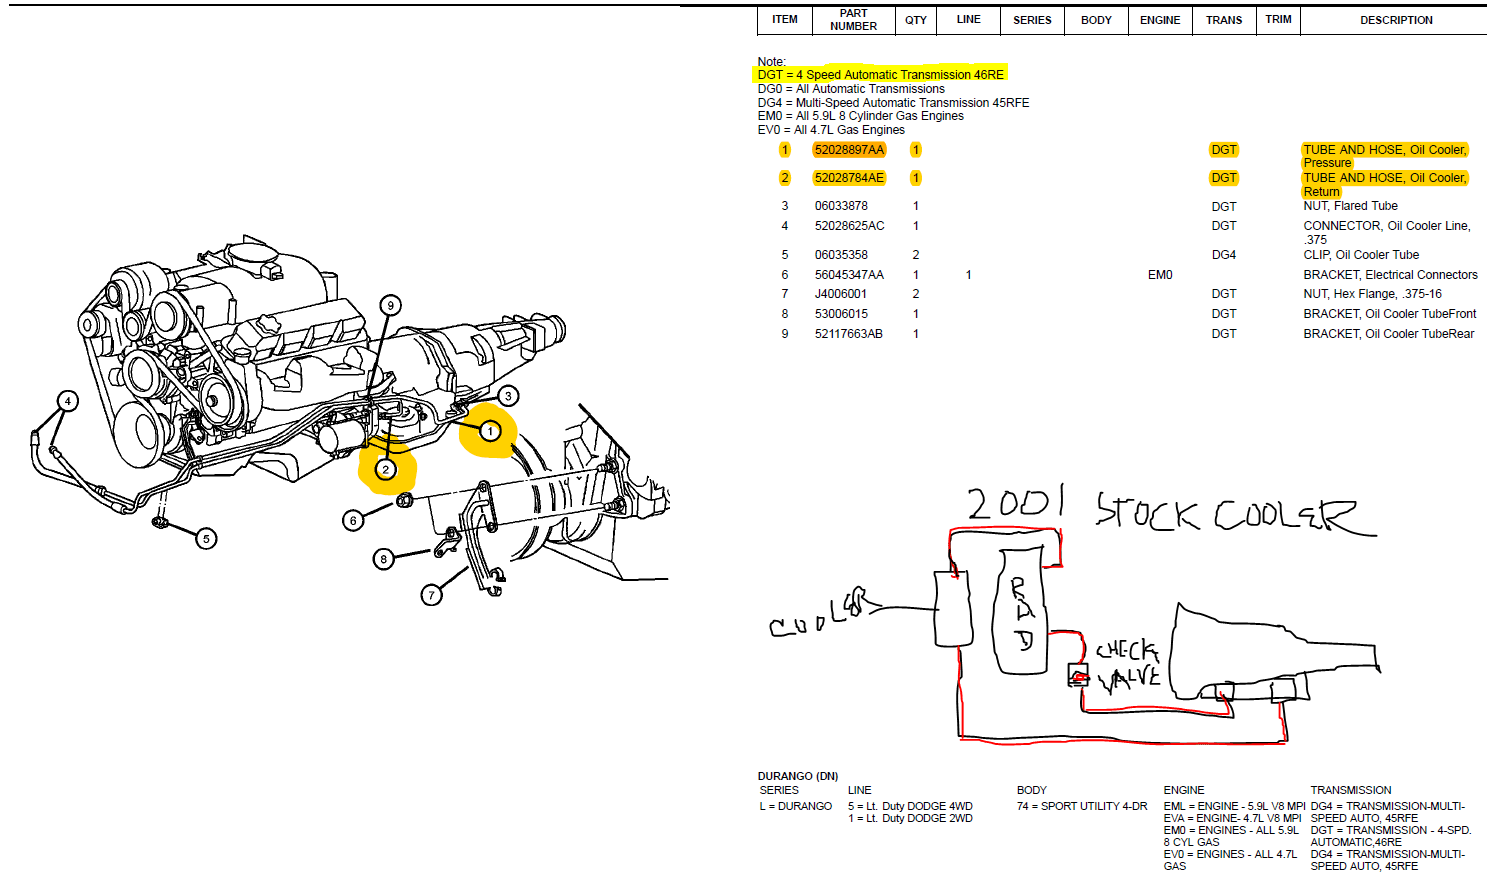 hight resolution of 2001 dodge ram transmission diagram wiring diagram sample 2001 dodge ram 1500 4x4 transmission diagram 1999